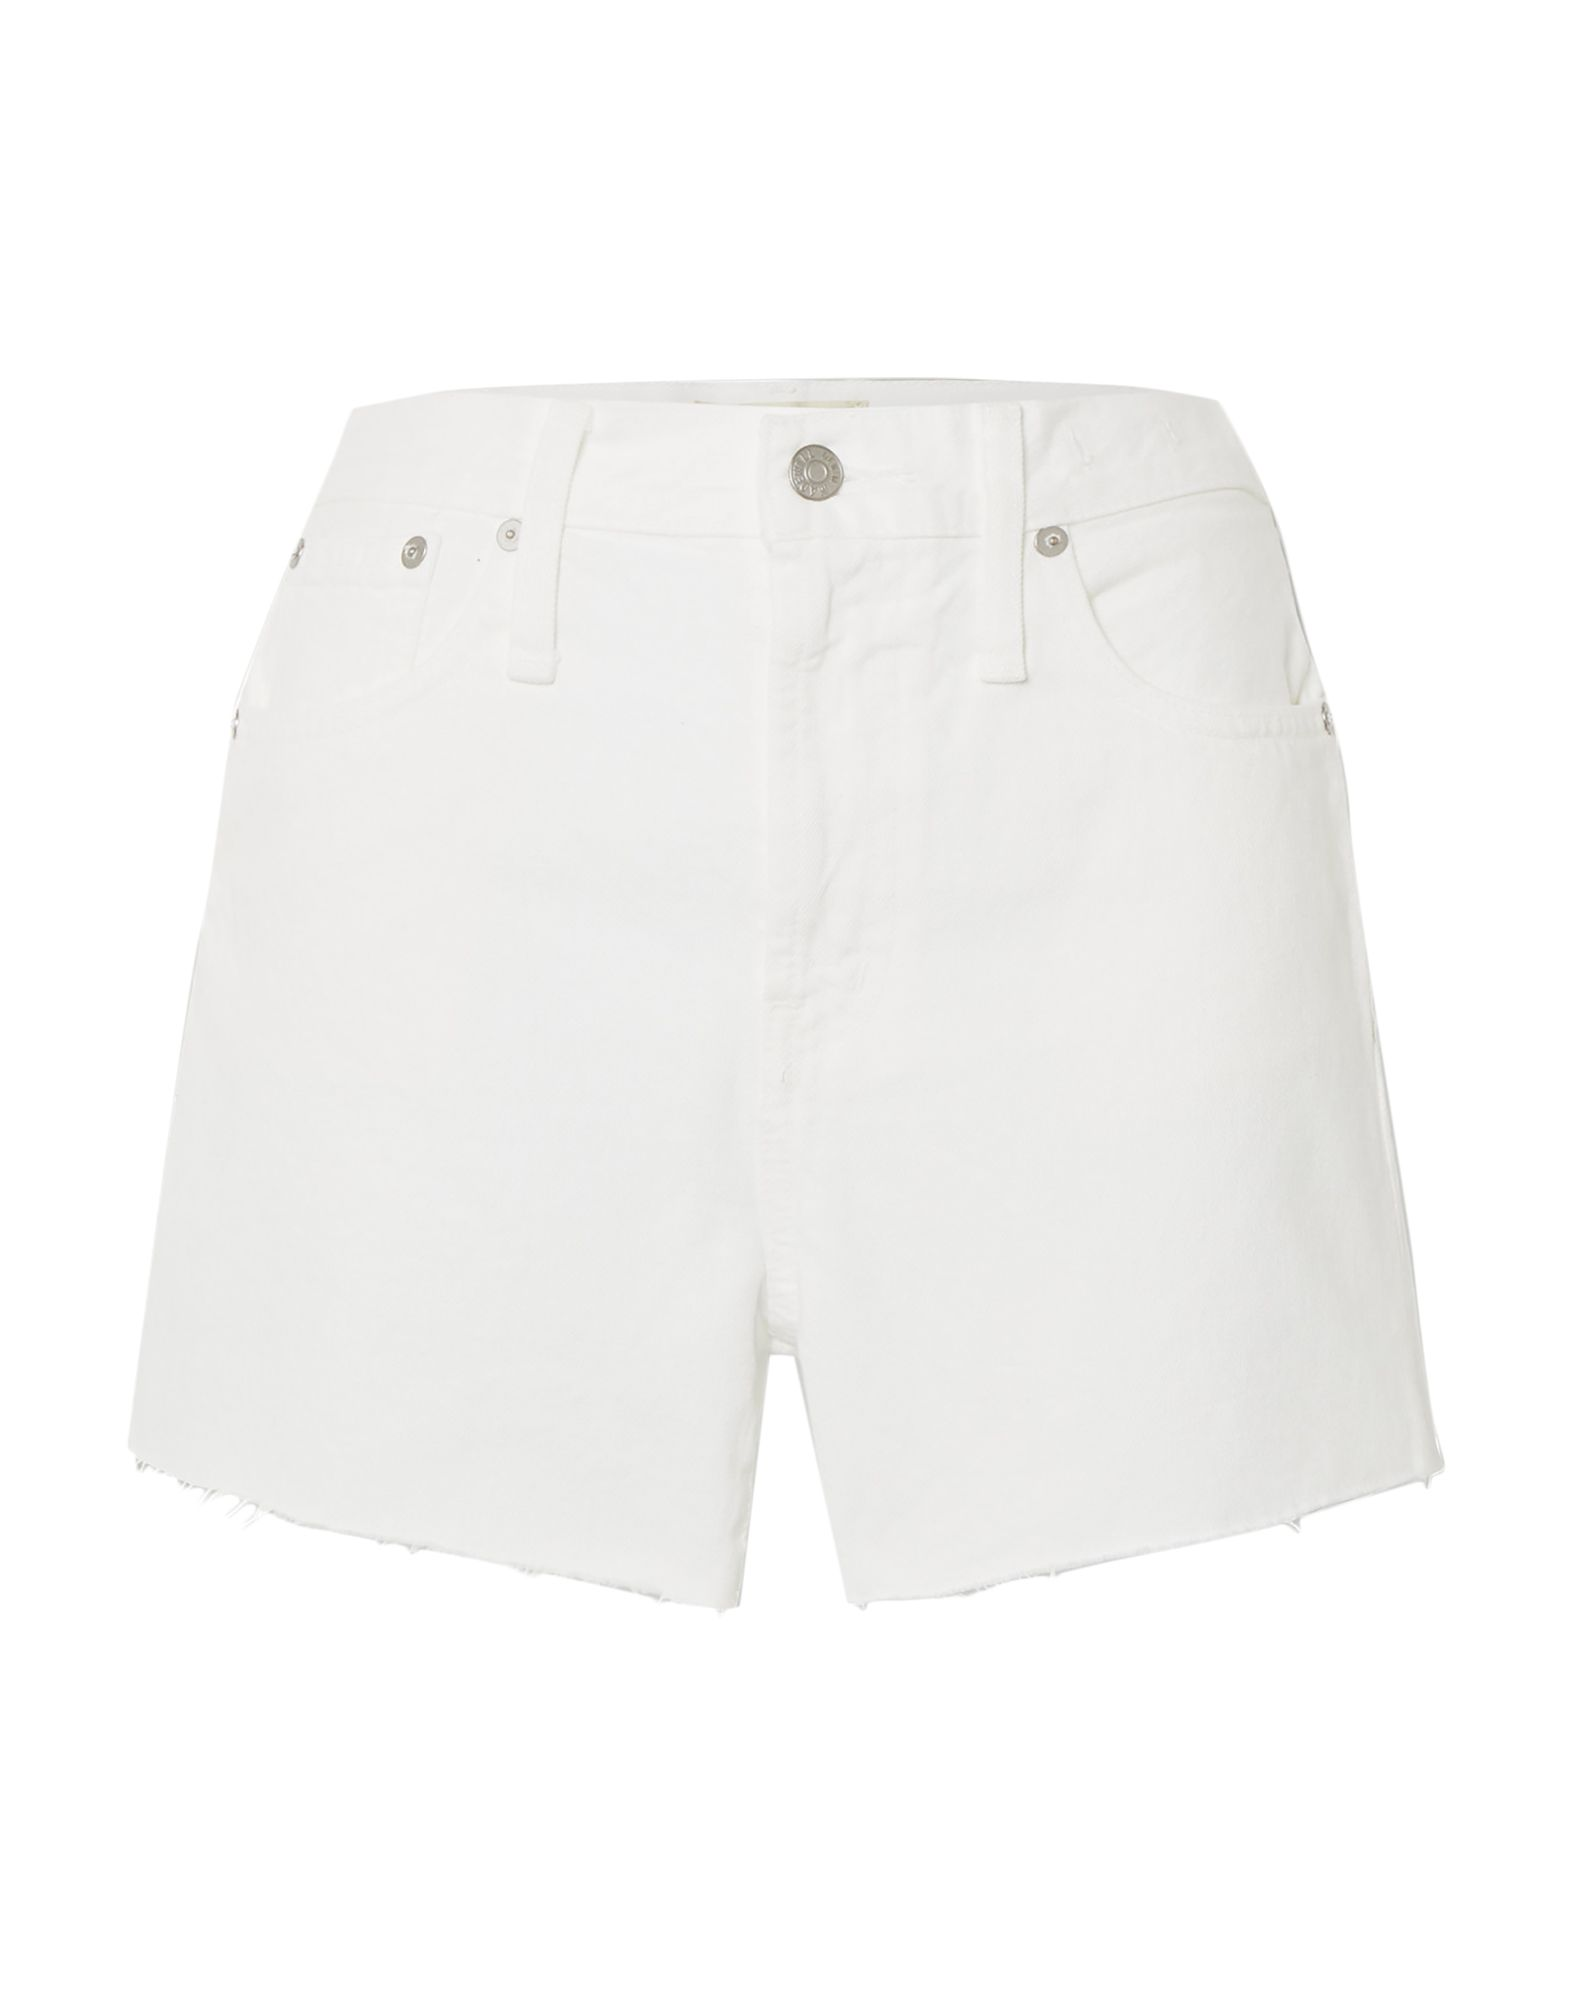 MADEWELL Denim shorts. denim, no appliqués, solid color, colored wash, mid rise, button, zip, multipockets, fringed hem. 100% Cotton